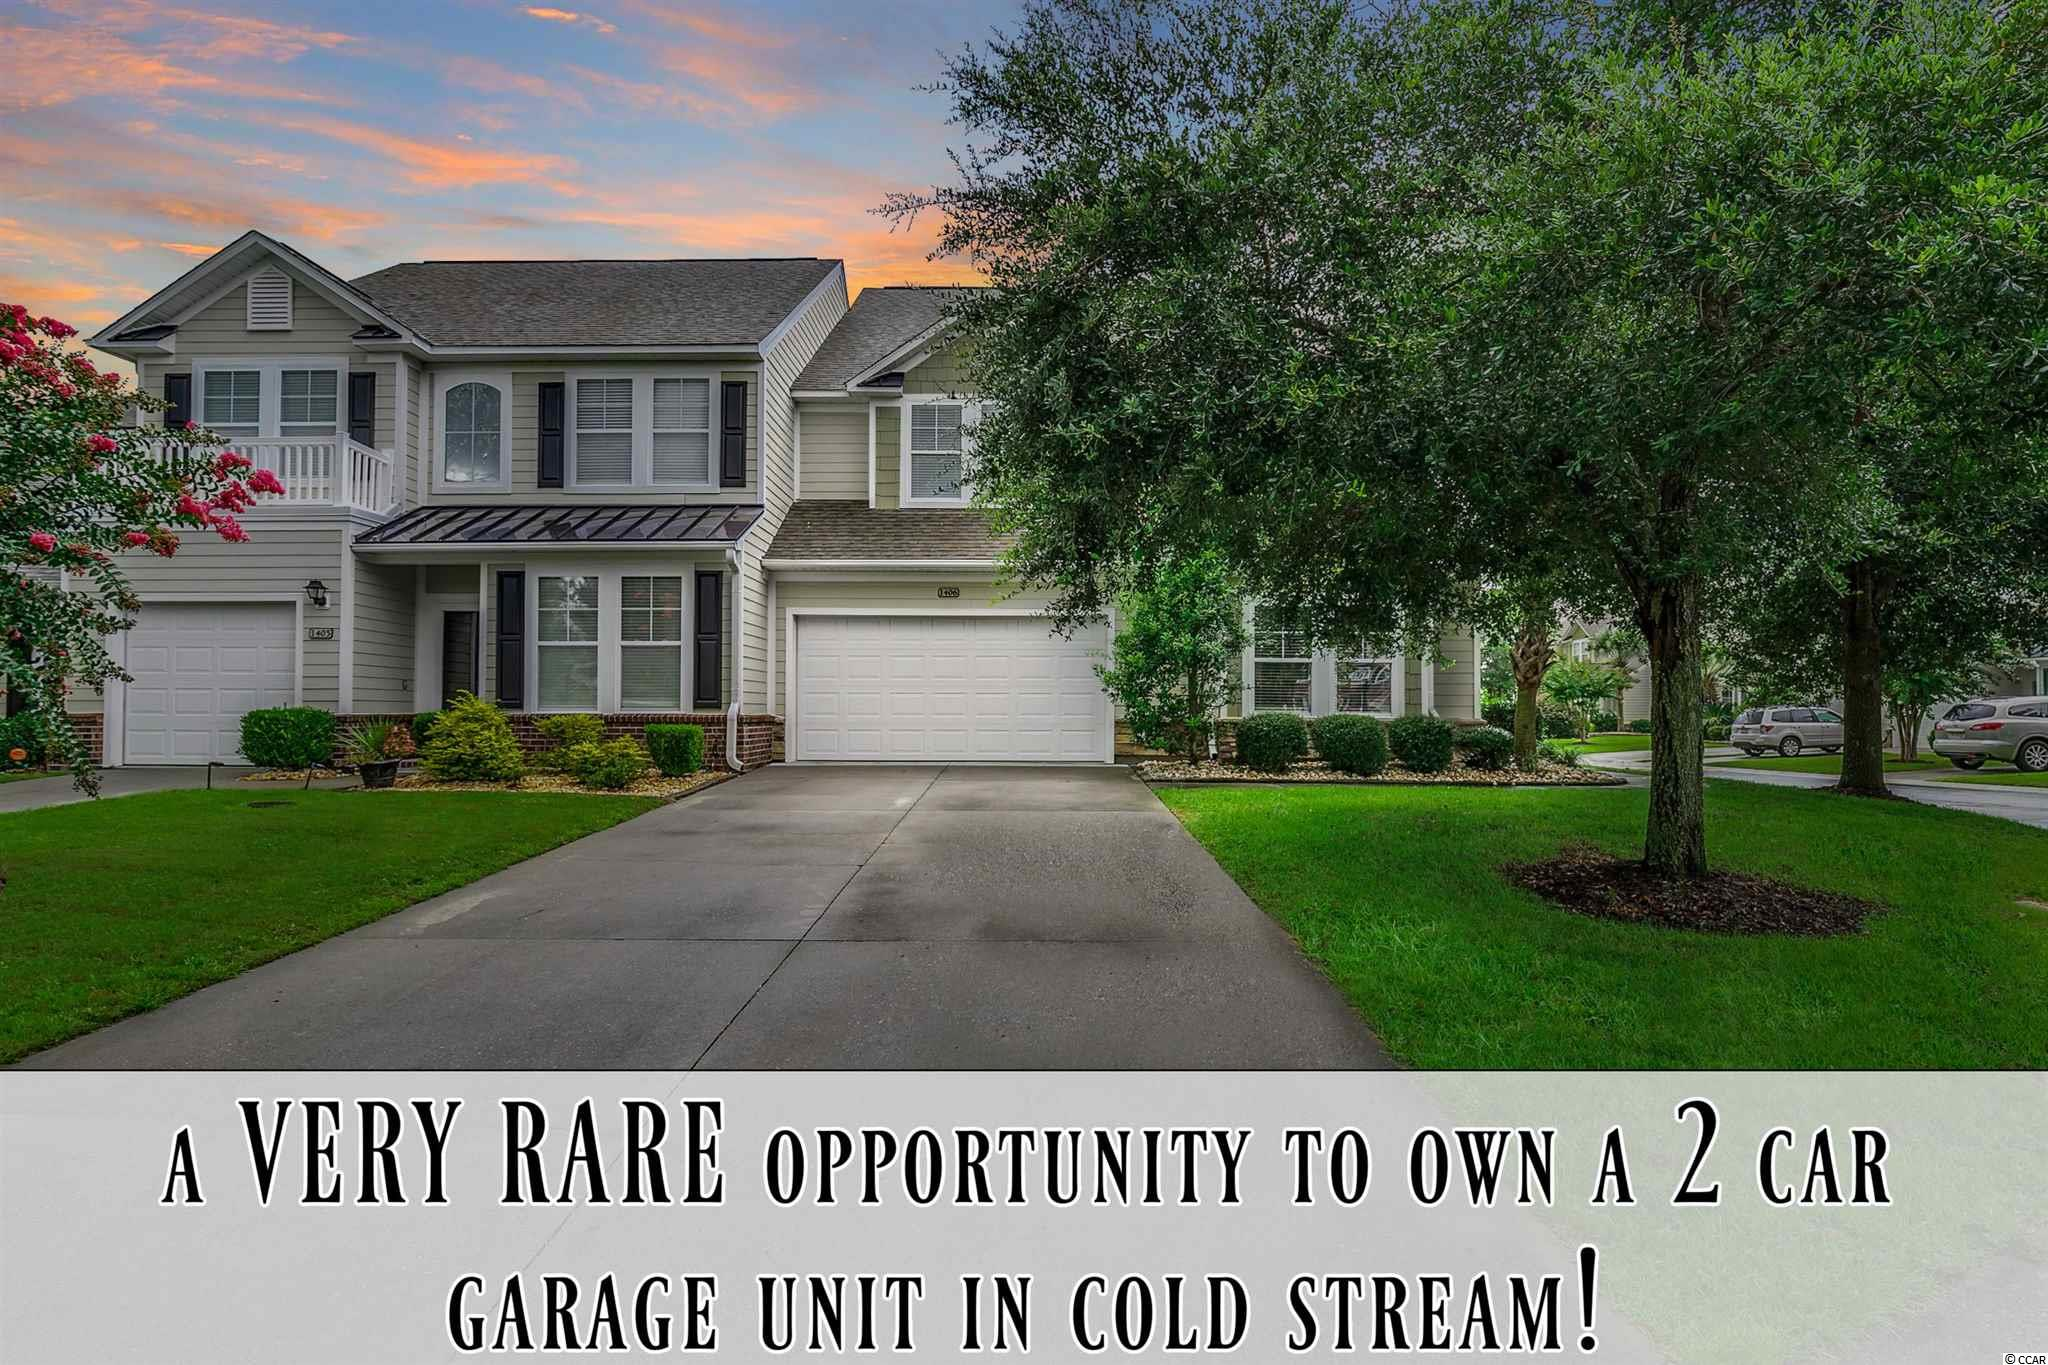 A rare opportunity in Cold Stream Cove!!! One of the only 2 car garage floor plans built within the community (and a spacious corner unit!). Cold Stream Cove is a townhome community located directly across the street from the only TPC golf course in the state of SC and directly in the heart of most sought after areas of Murrells Inlet (Prince Creek). Not only do these 2 car garage plans hardly come up for sale, this specific unit has brand new LVP flooring in the living areas & master bedroom, all brand new carpeting upstairs, and all walls and baseboards freshly painted! There are just so many perks to list.... You can even short term rent in Cold Stream Cove if you would like!!! Although there aren't many short term rentals within the community, the master deed does allow it. This is extremely rare in our area! Most vacation rentals are located on or within a few blocks of the ocean and pretty much all HOA restrictions within our area DO NOT allow the option to rent anything less than 12 months. So in most circumstances this would prevent you from weekly rentals to help offset any of your expenses. Well, the wonderful possibility is there at Cold Stream Cove!! This really does make this community even more desirable/valuable! The option is there whether you use it or not. Certainly a valuable selling feature even if you aren't going to take advantage of the option. Some other features to highlight: Corner location, very close to guest parking, away from any noise of the community pool, large kitchen, vaulted ceilings, 1st floor master bedroom, large master walk-in closet, large bedrooms, walk-in attic storage, additional flex area upstairs (perfect for home office desk), and a nice screened in porch (not all these units have the screened in porch which adds huge value). **Please be sure to check out the 360° Immoviewer® virtual tour link, which can be found on the main listing page**. You DO NOT want to let this one get away like the last one did!